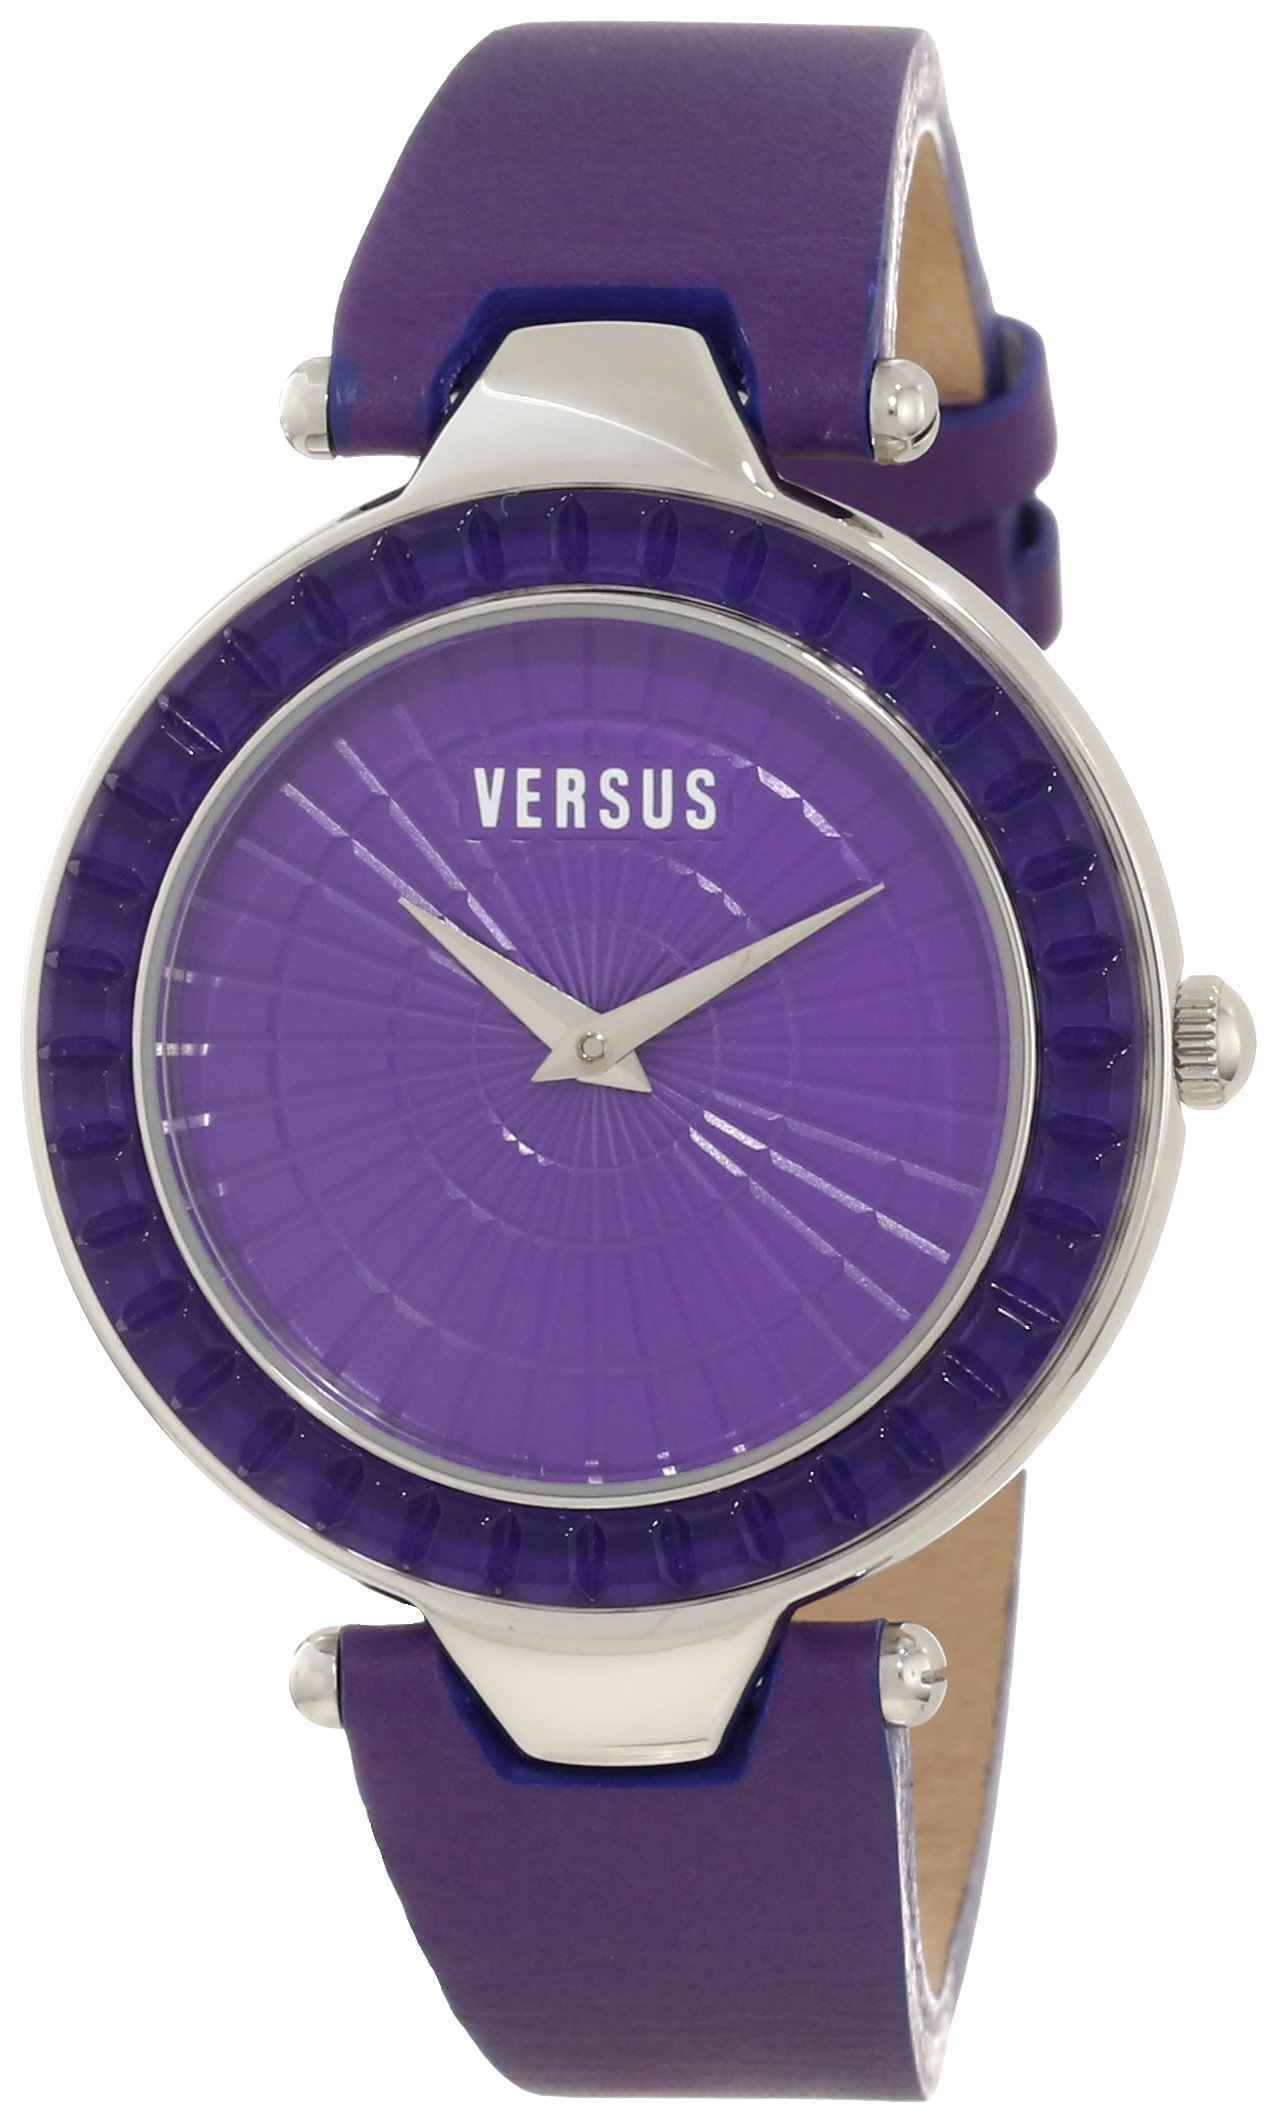 Versus by Versace Women's 3C72100000 Sertie Purple Dial Textured Glass Bezel Genuine Leather Watch